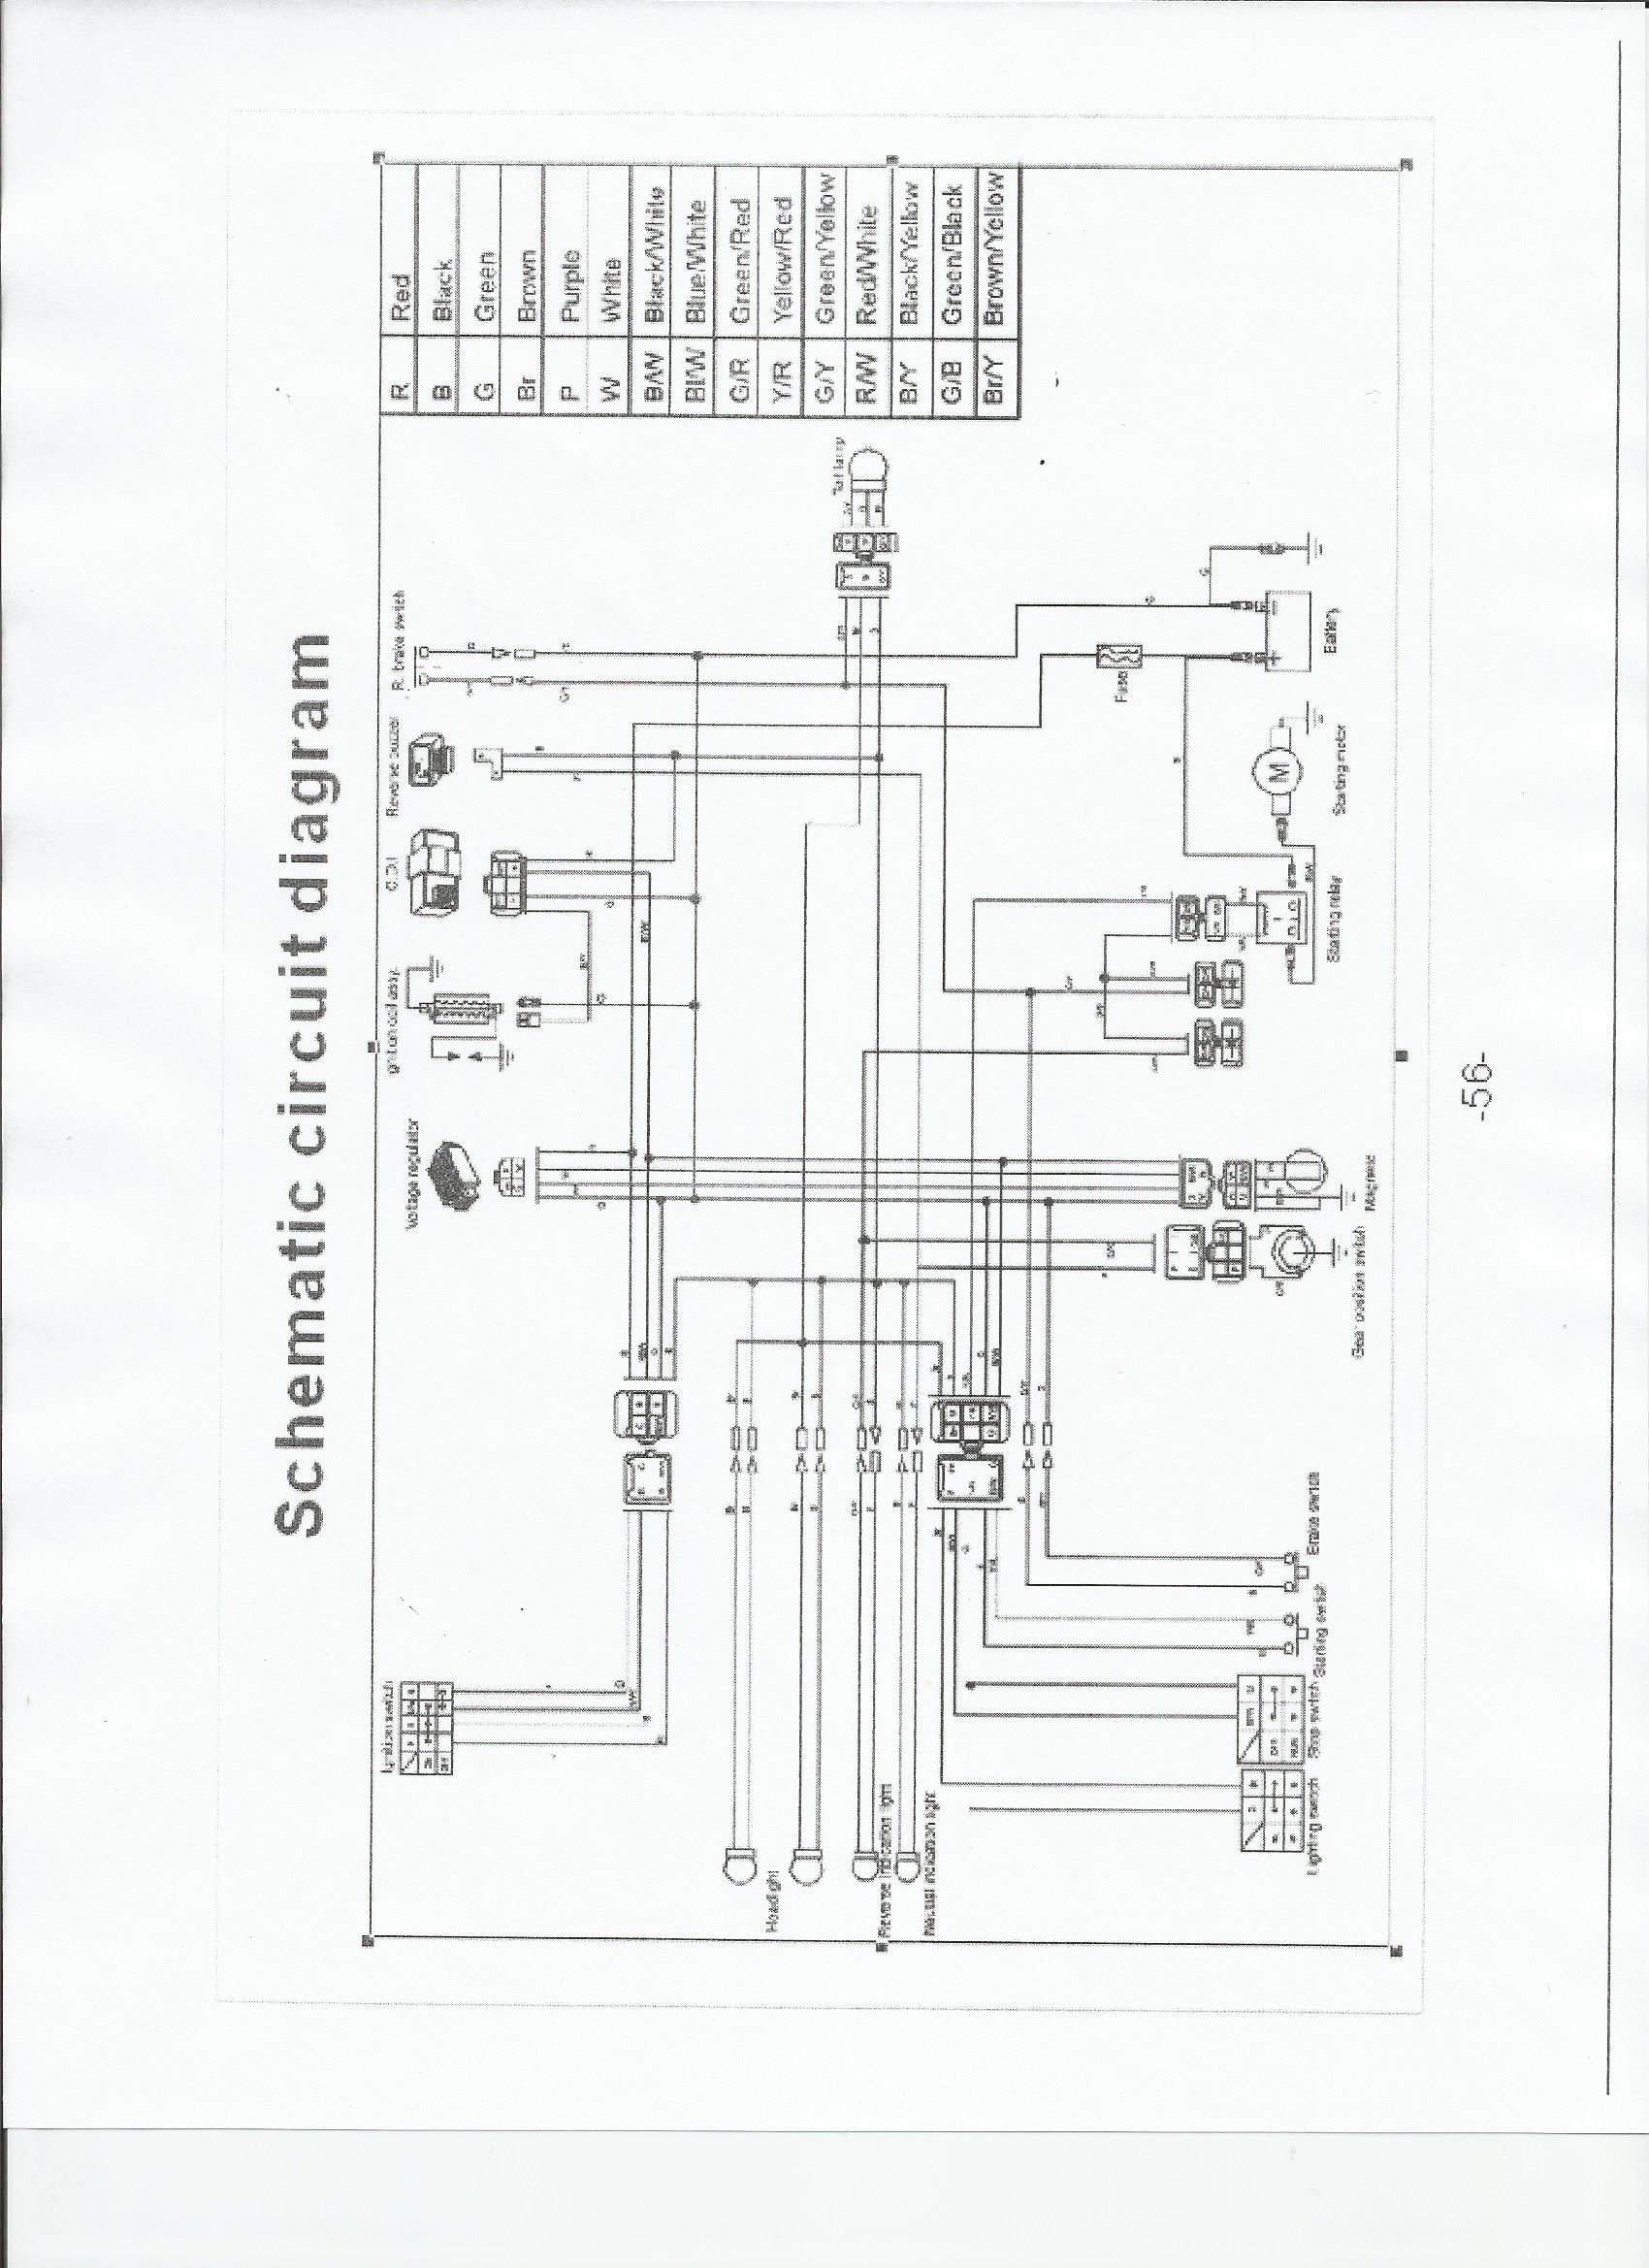 tao tao wiring schematic taotao mini and youth atv wiring schematic familygokarts support Tao Tao 50Cc Moped Wiring-Diagram at crackthecode.co